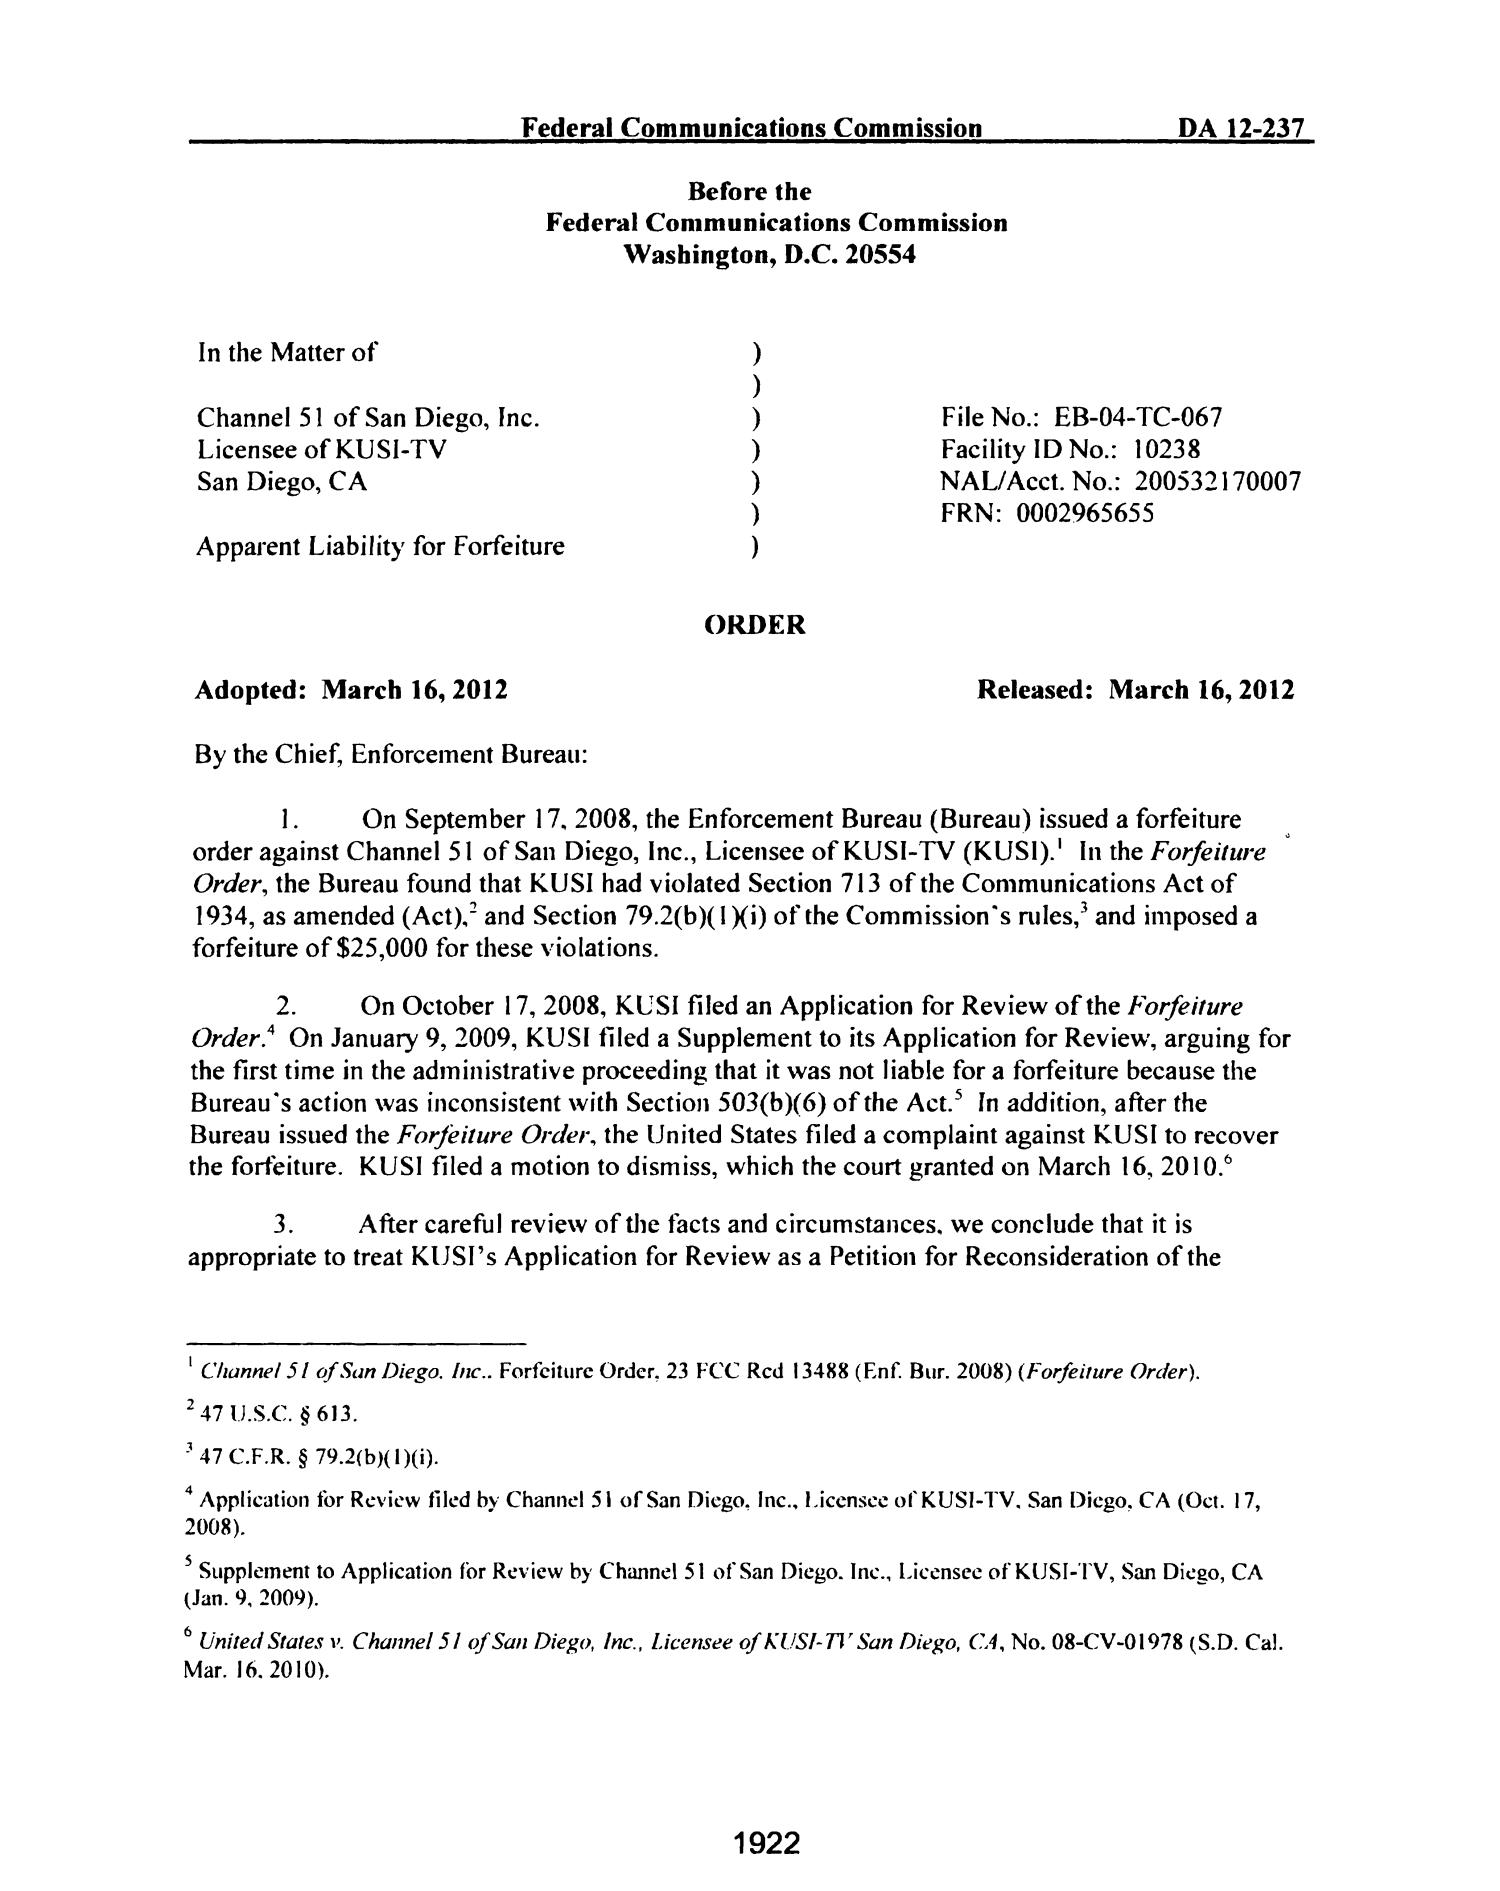 FCC Record, Volume 27, No. 3, Pages 1878 to 2785, February 21 - March 16, 2012                                                                                                      1922